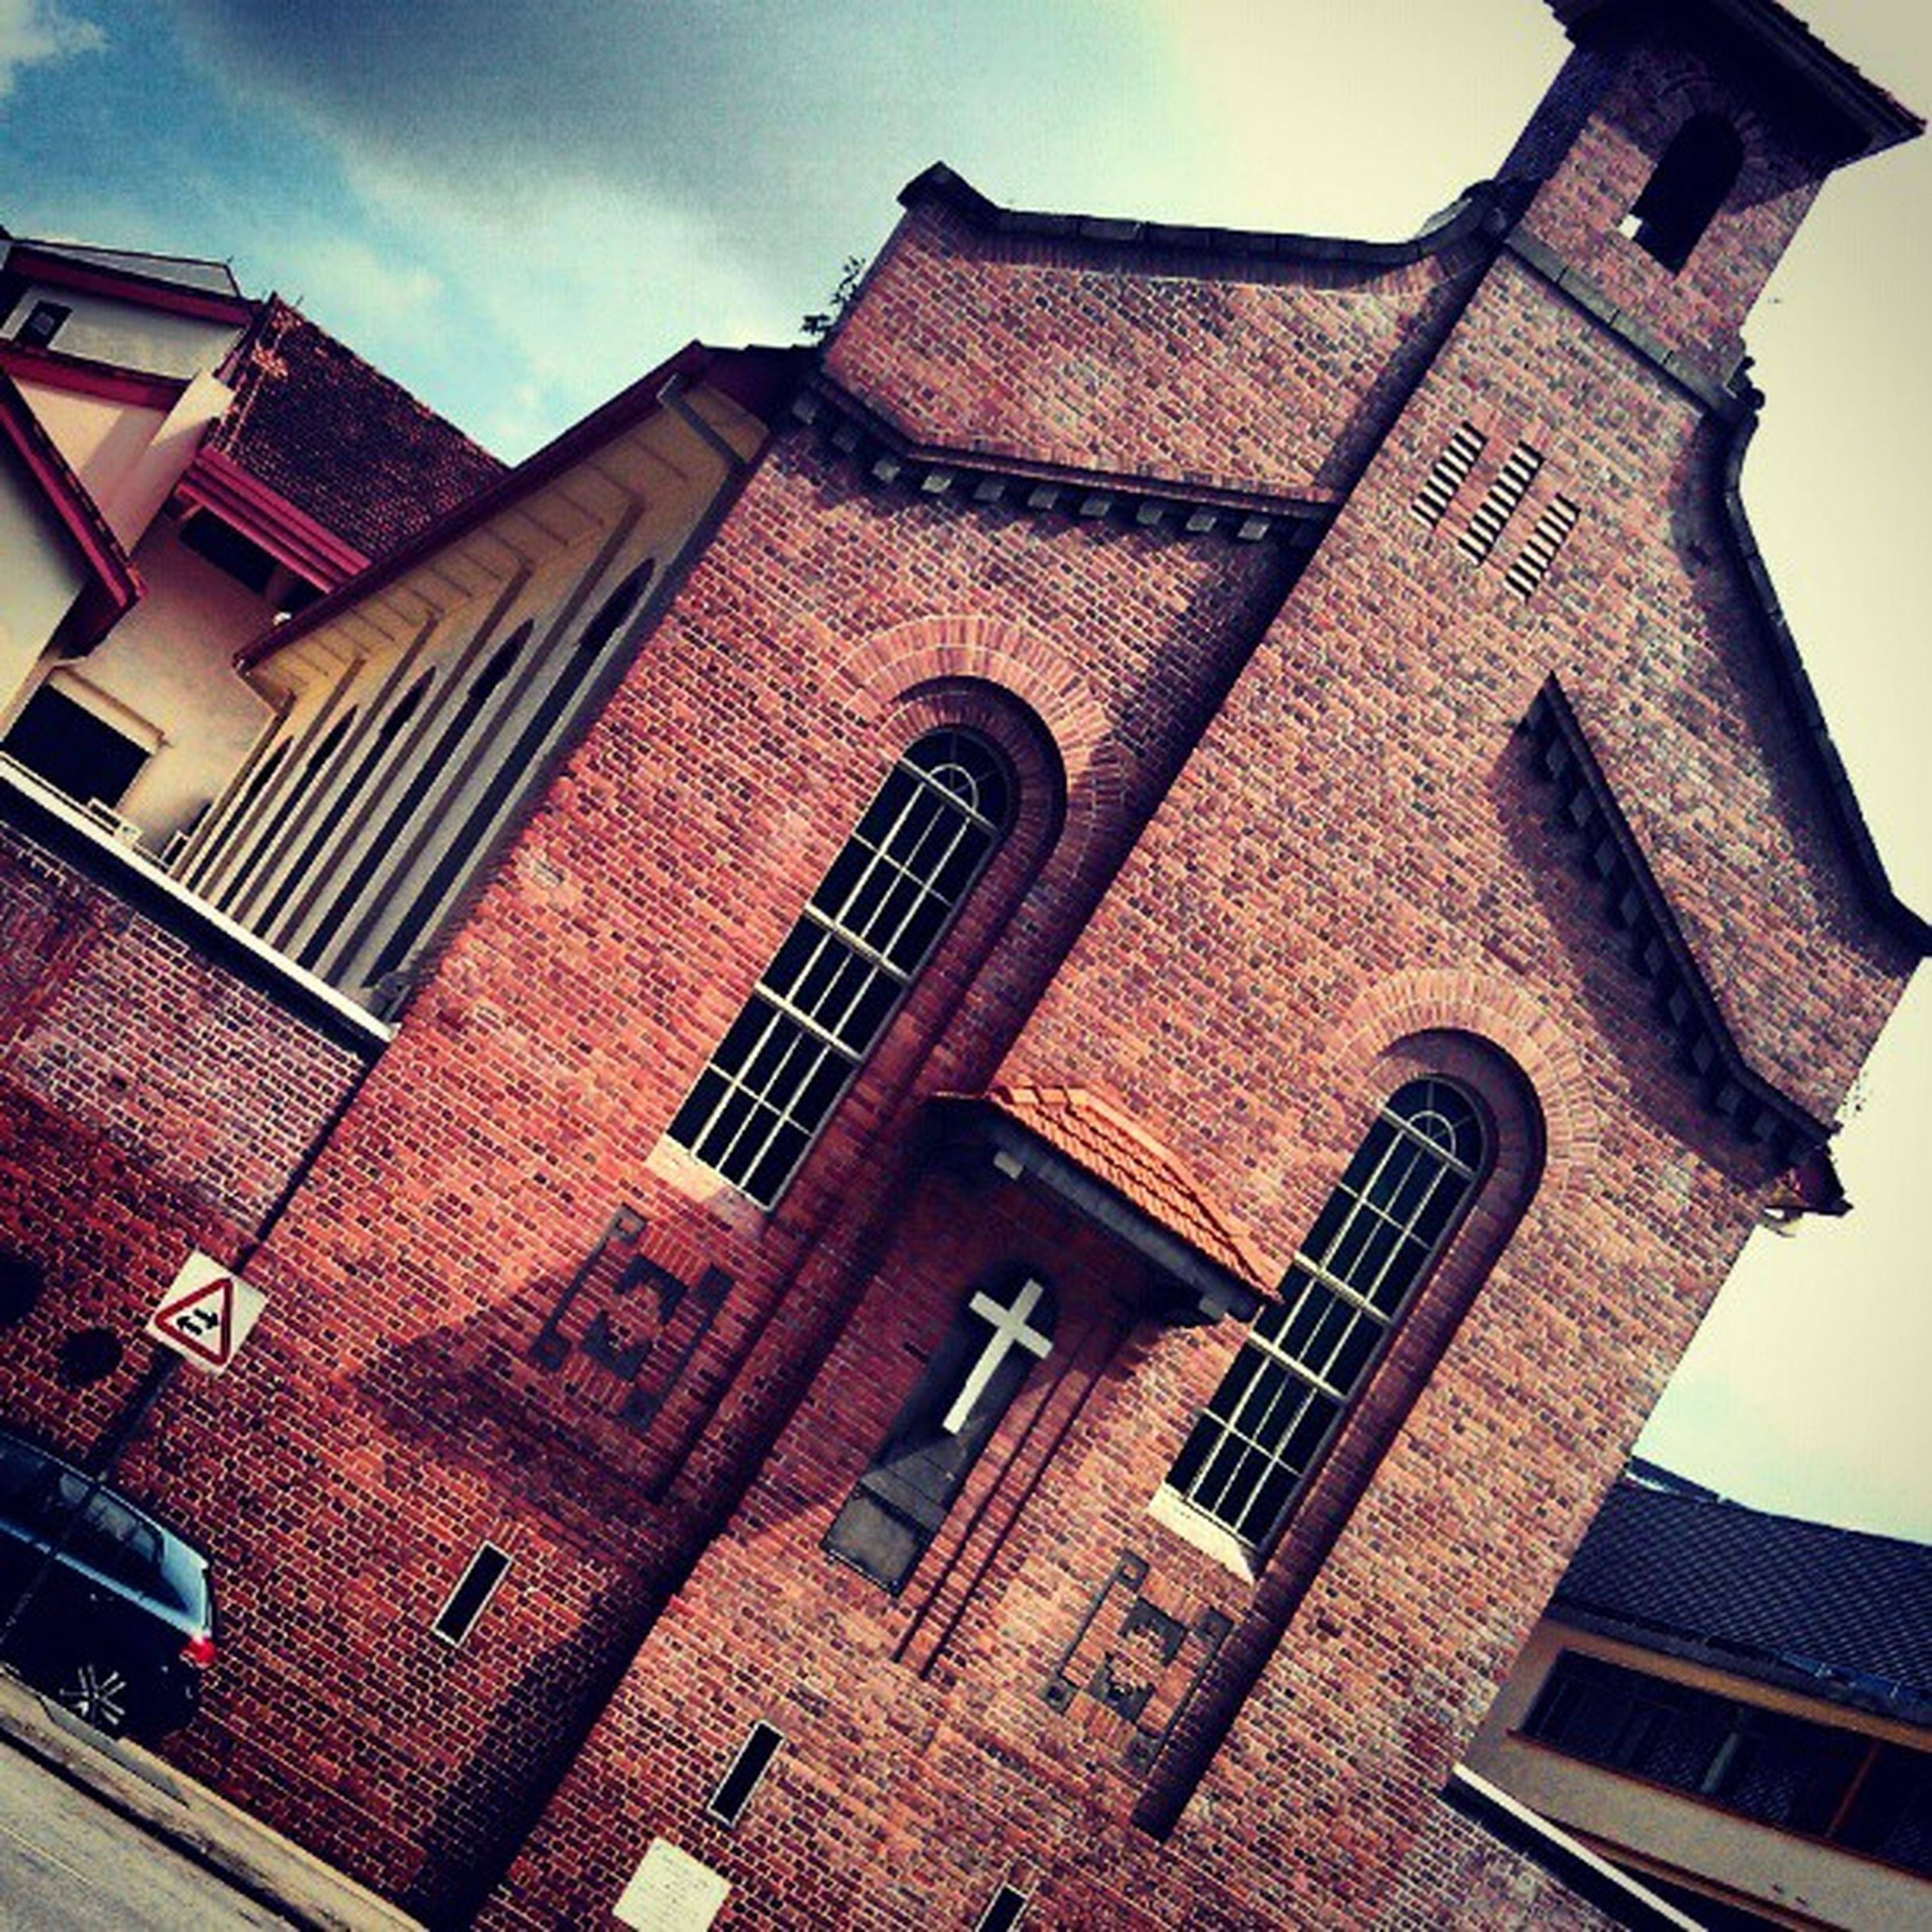 architecture, building exterior, built structure, low angle view, window, sky, arch, history, church, tower, religion, day, outdoors, building, old, no people, sunlight, facade, place of worship